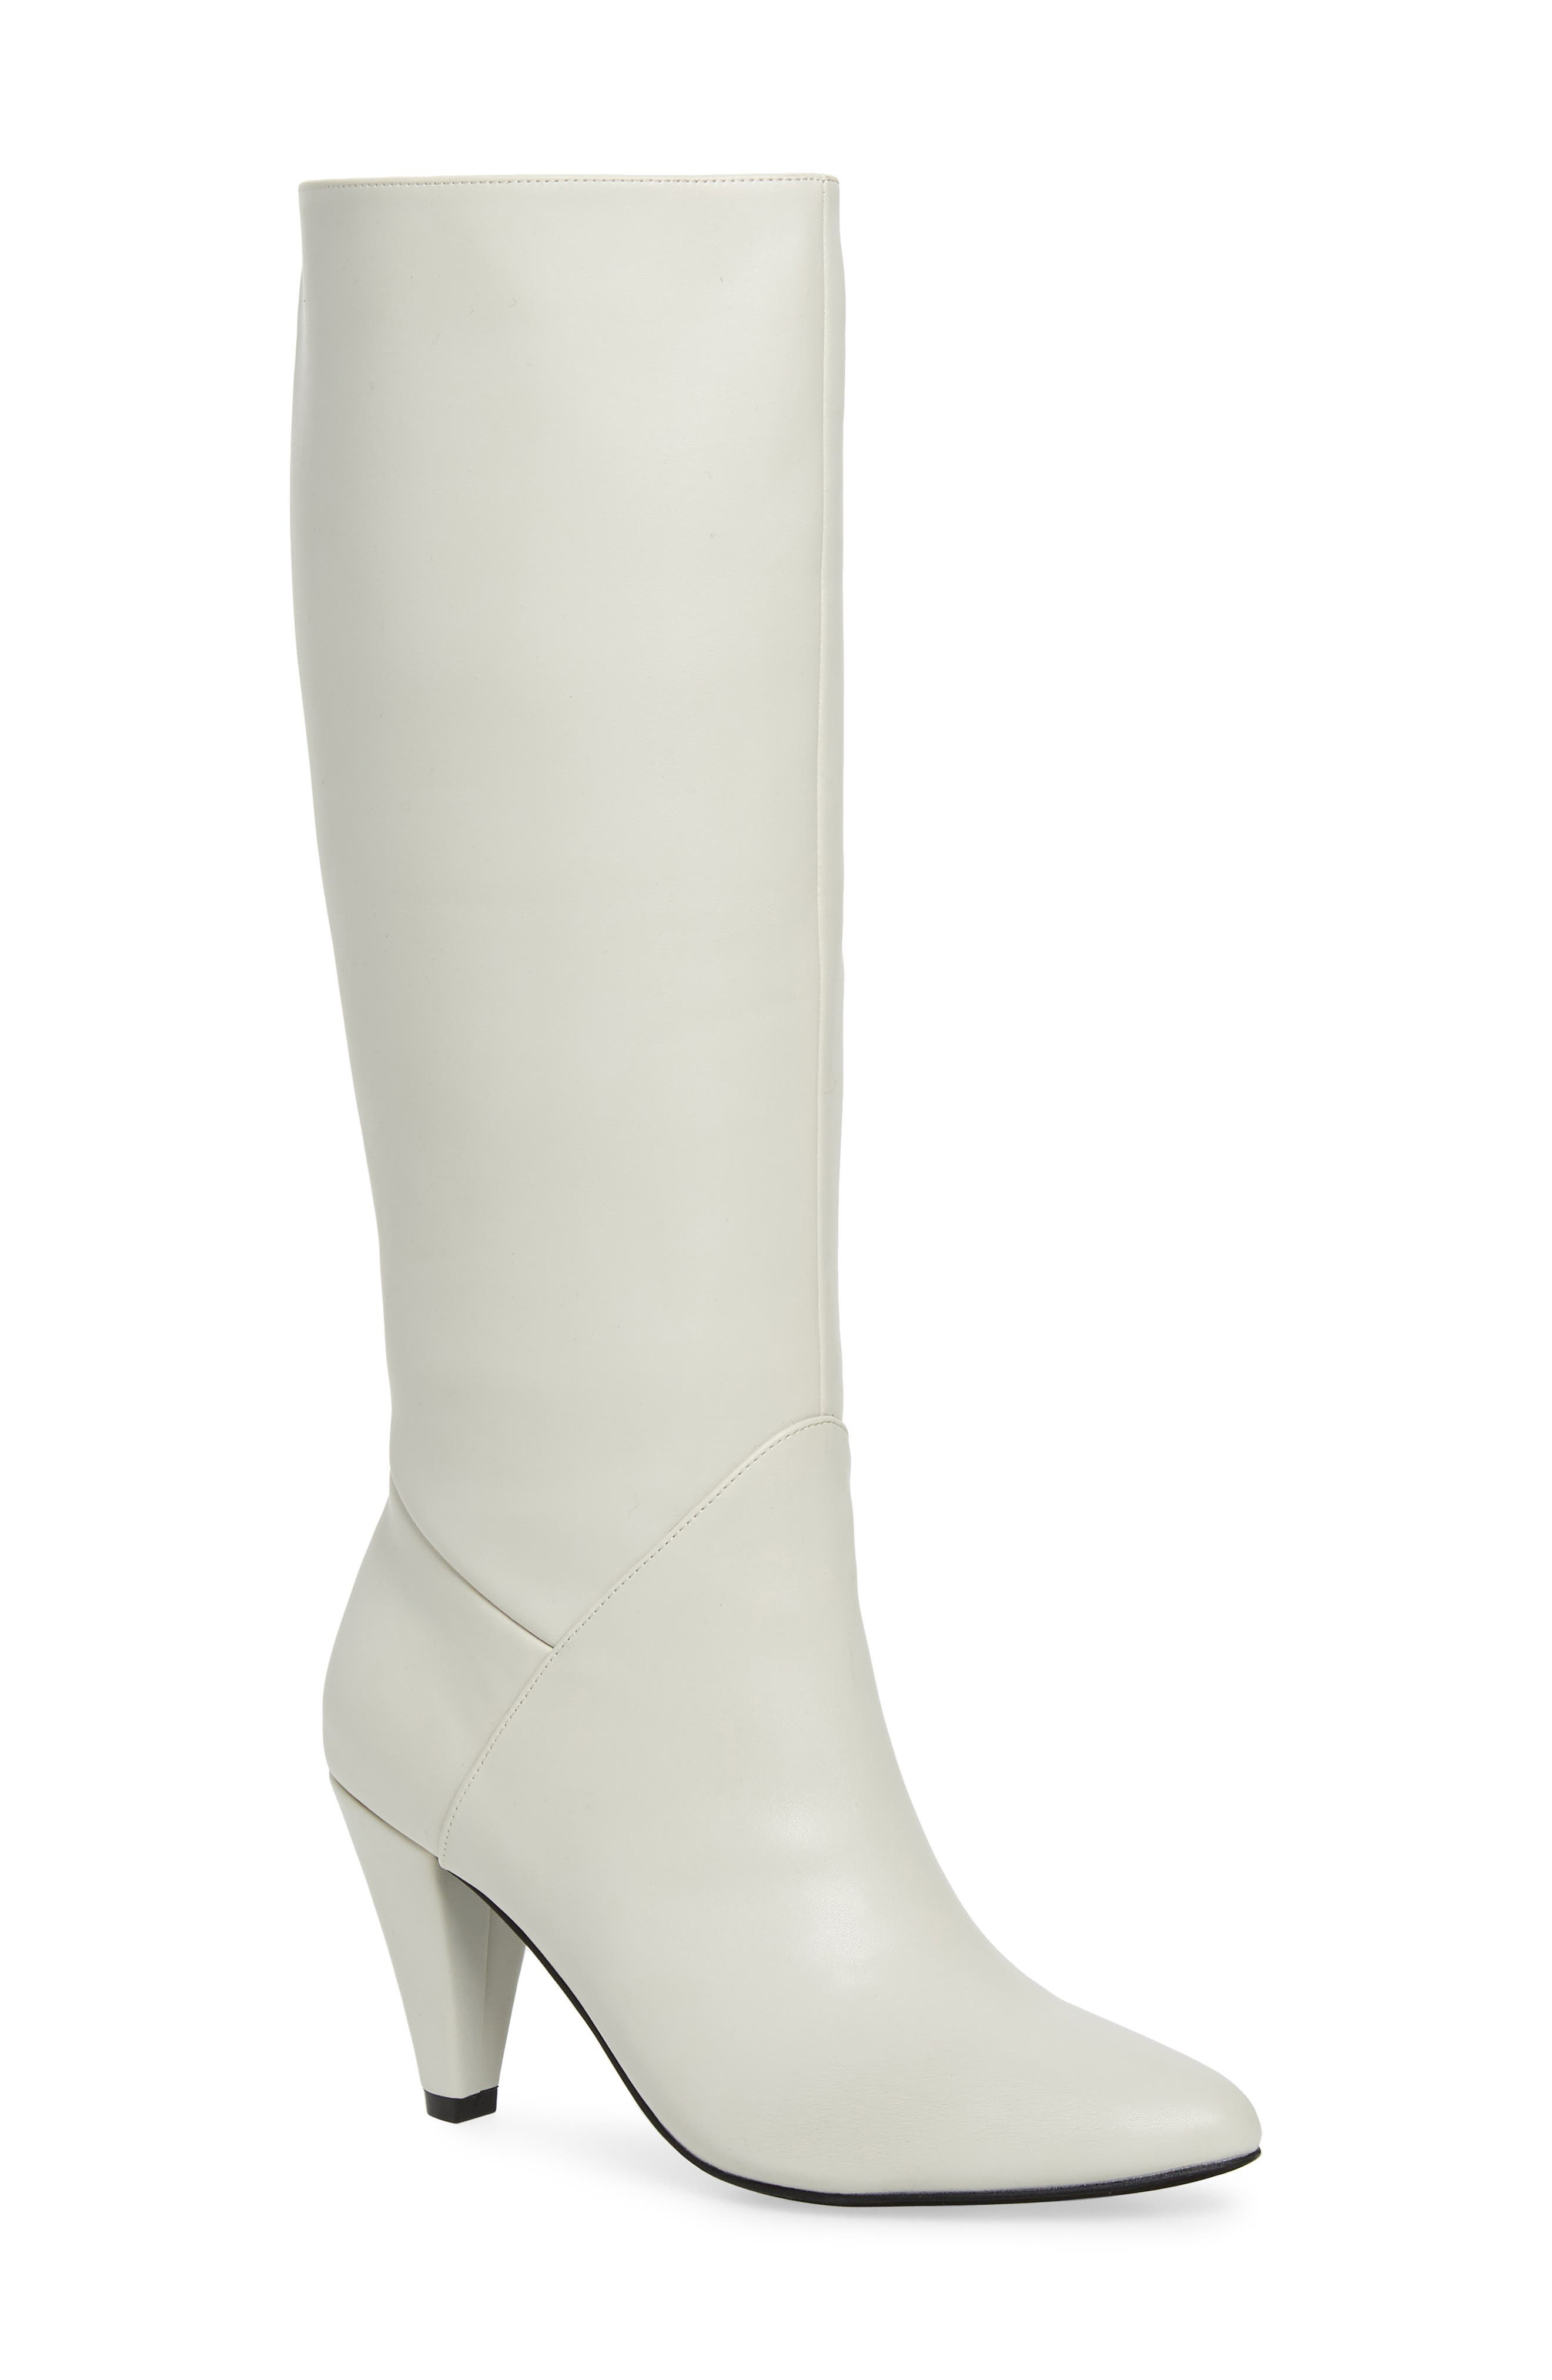 JEFFREY CAMPBELL Jeffery Campbell Candle Knee High Boot in Ivory Faux Leather